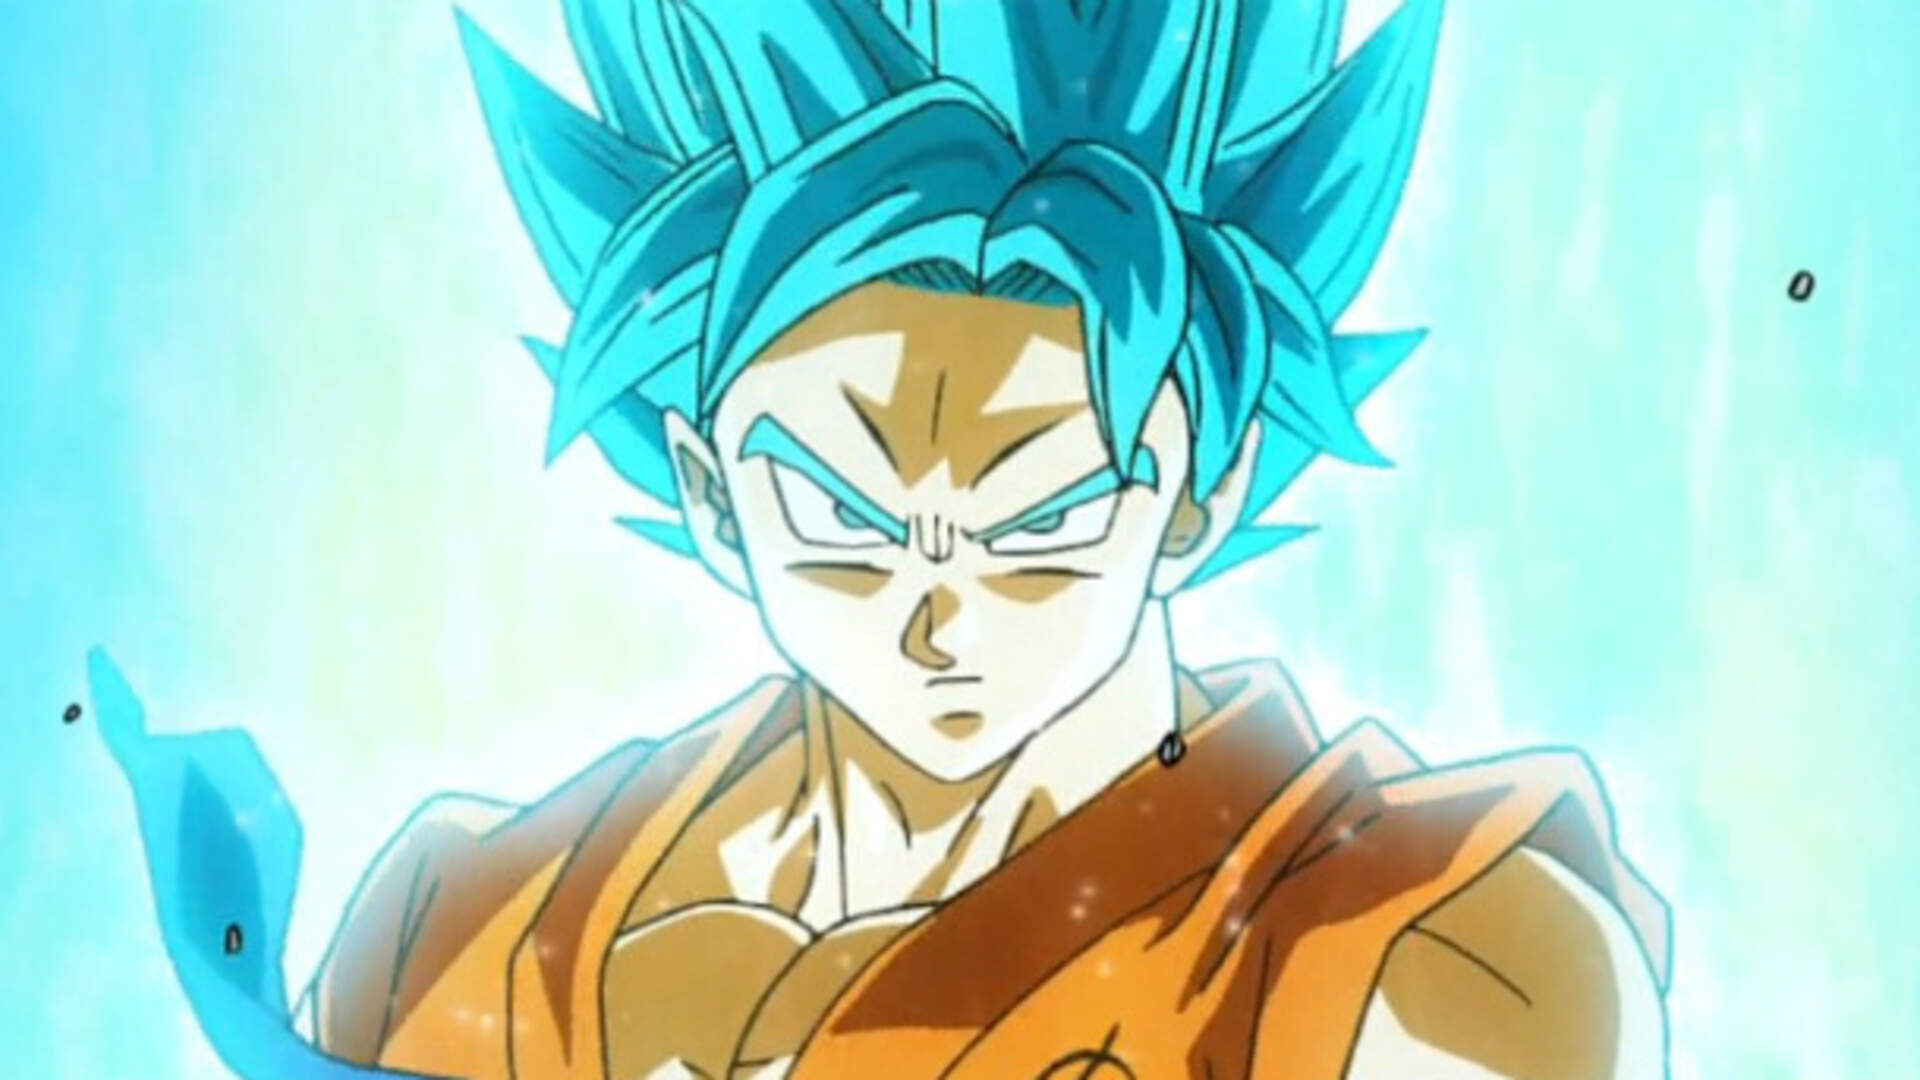 Dragon Ball FighterZ Adds Super Saiyan Blue Goku, Vegeta, and Android 18